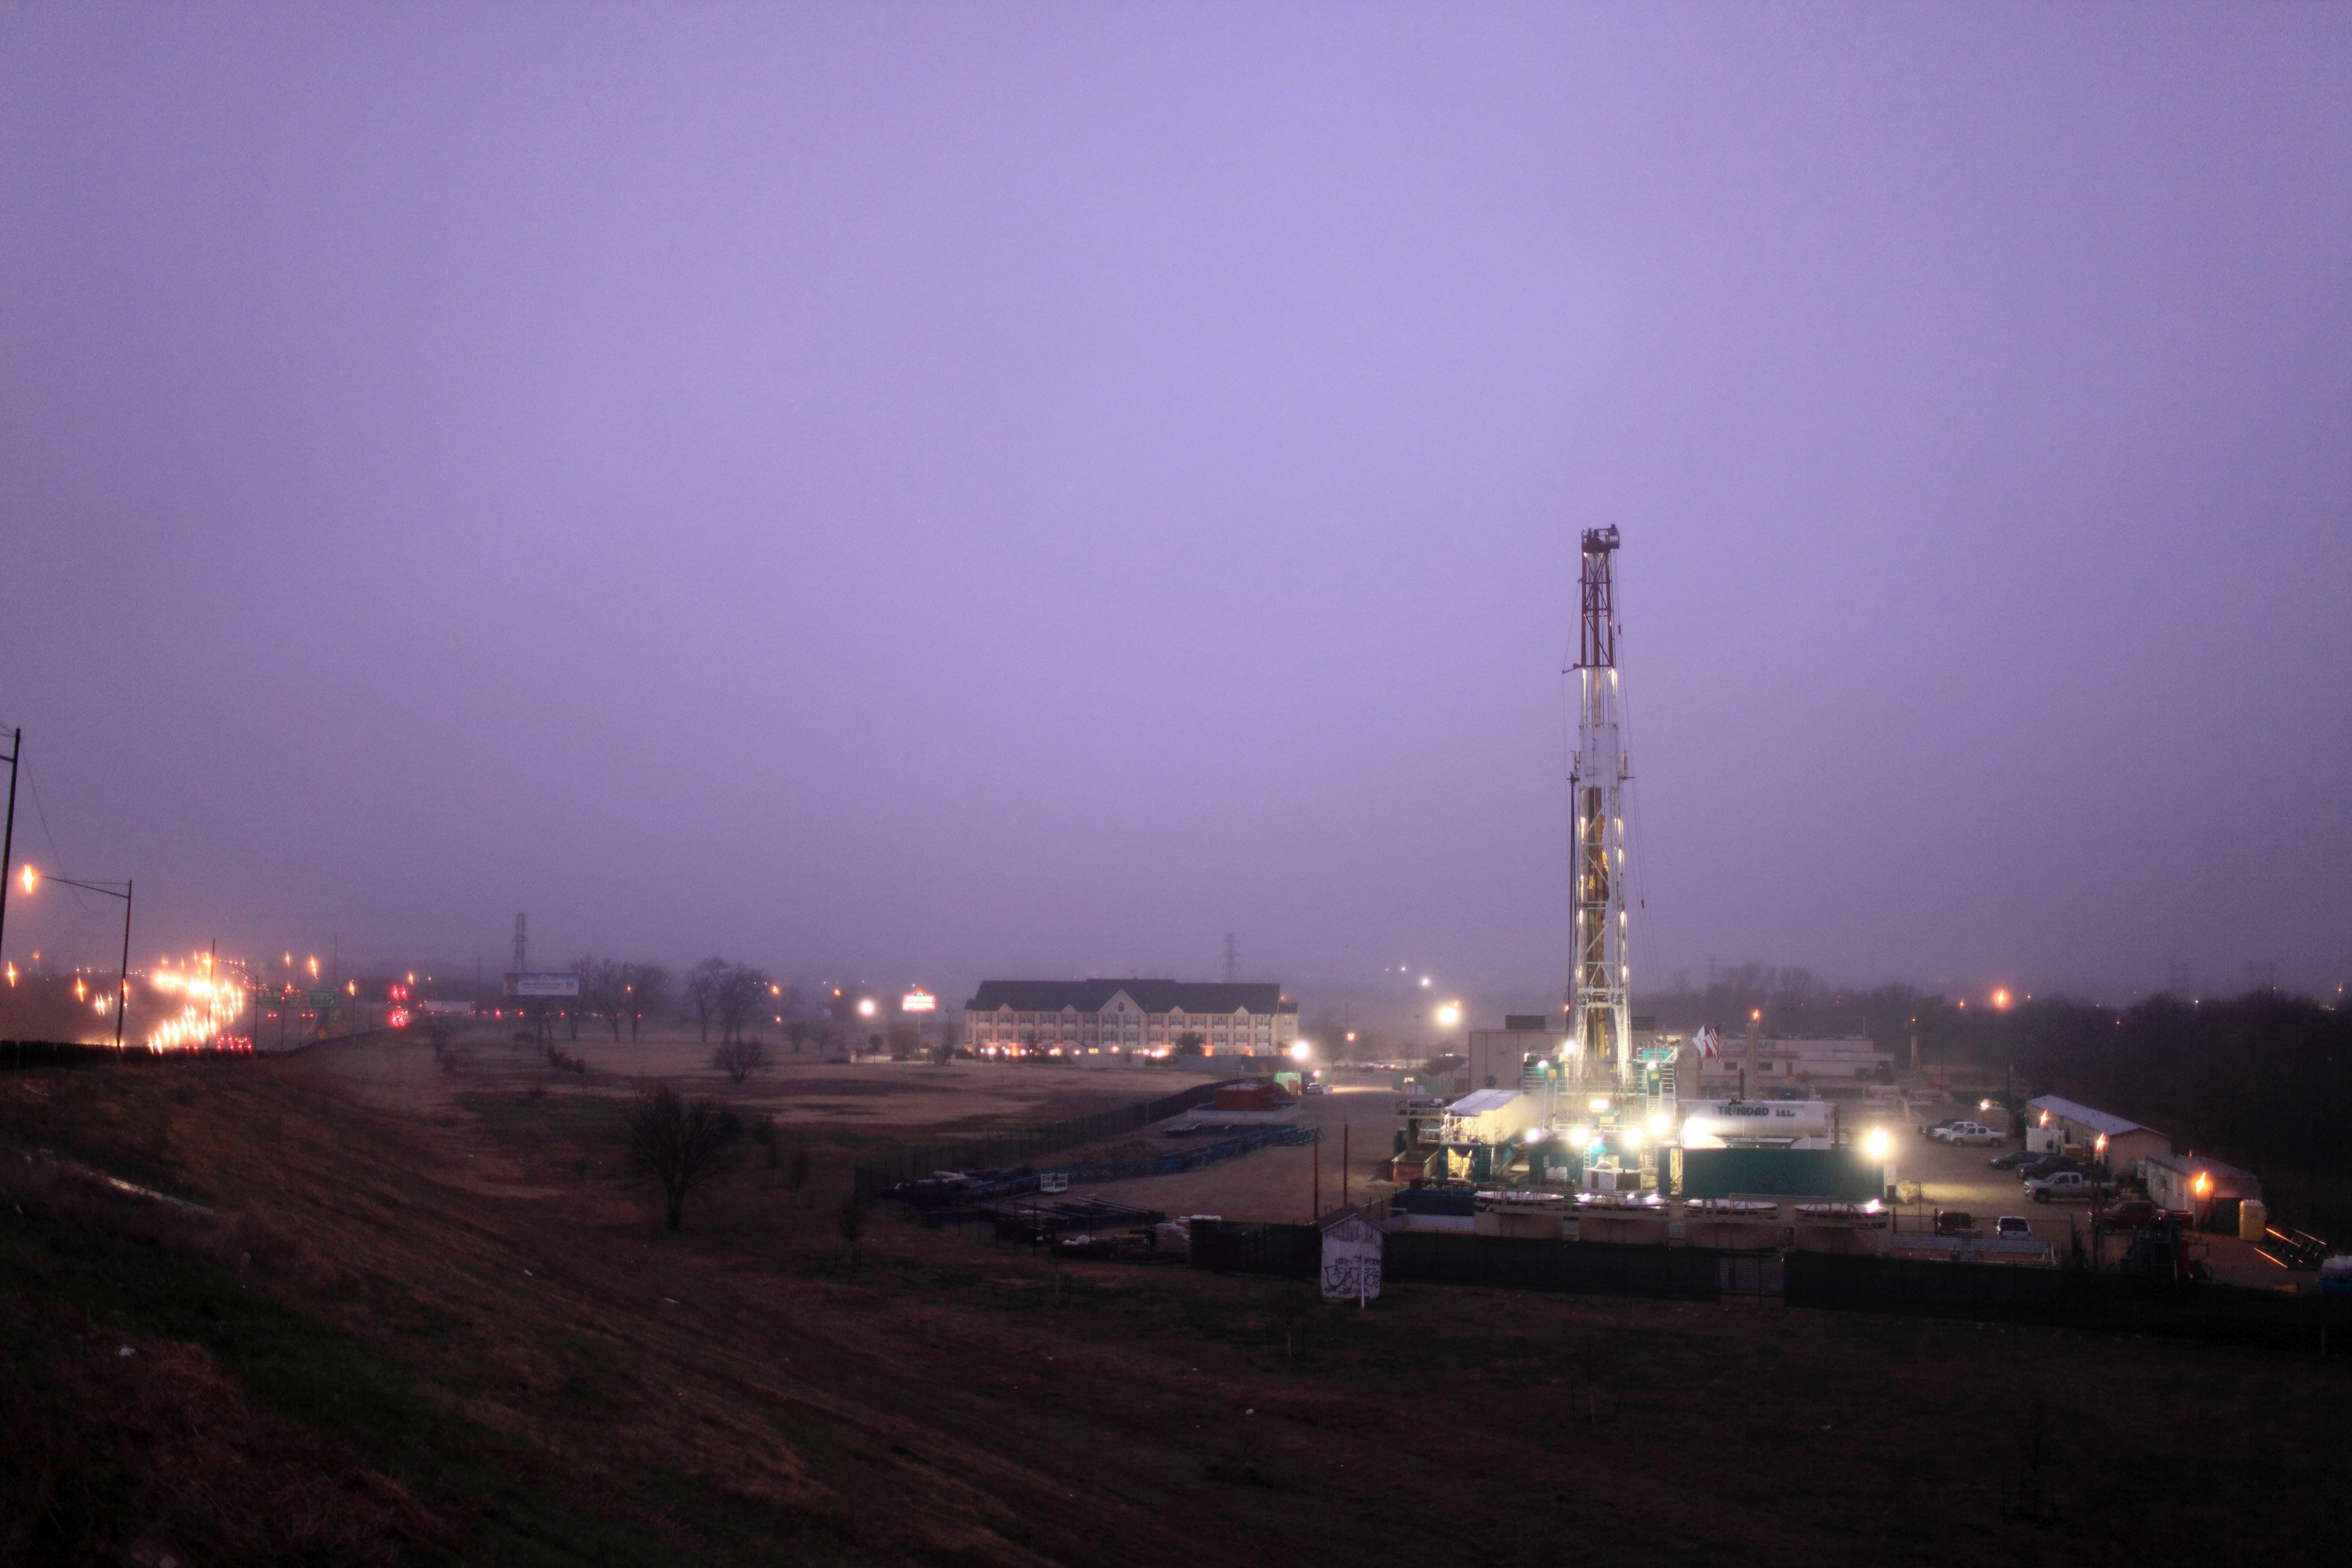 A 150-foot derrick towers over traffic along Interstate 35W, left, positioned on a natural gas well site in Fort Worth, Texas.